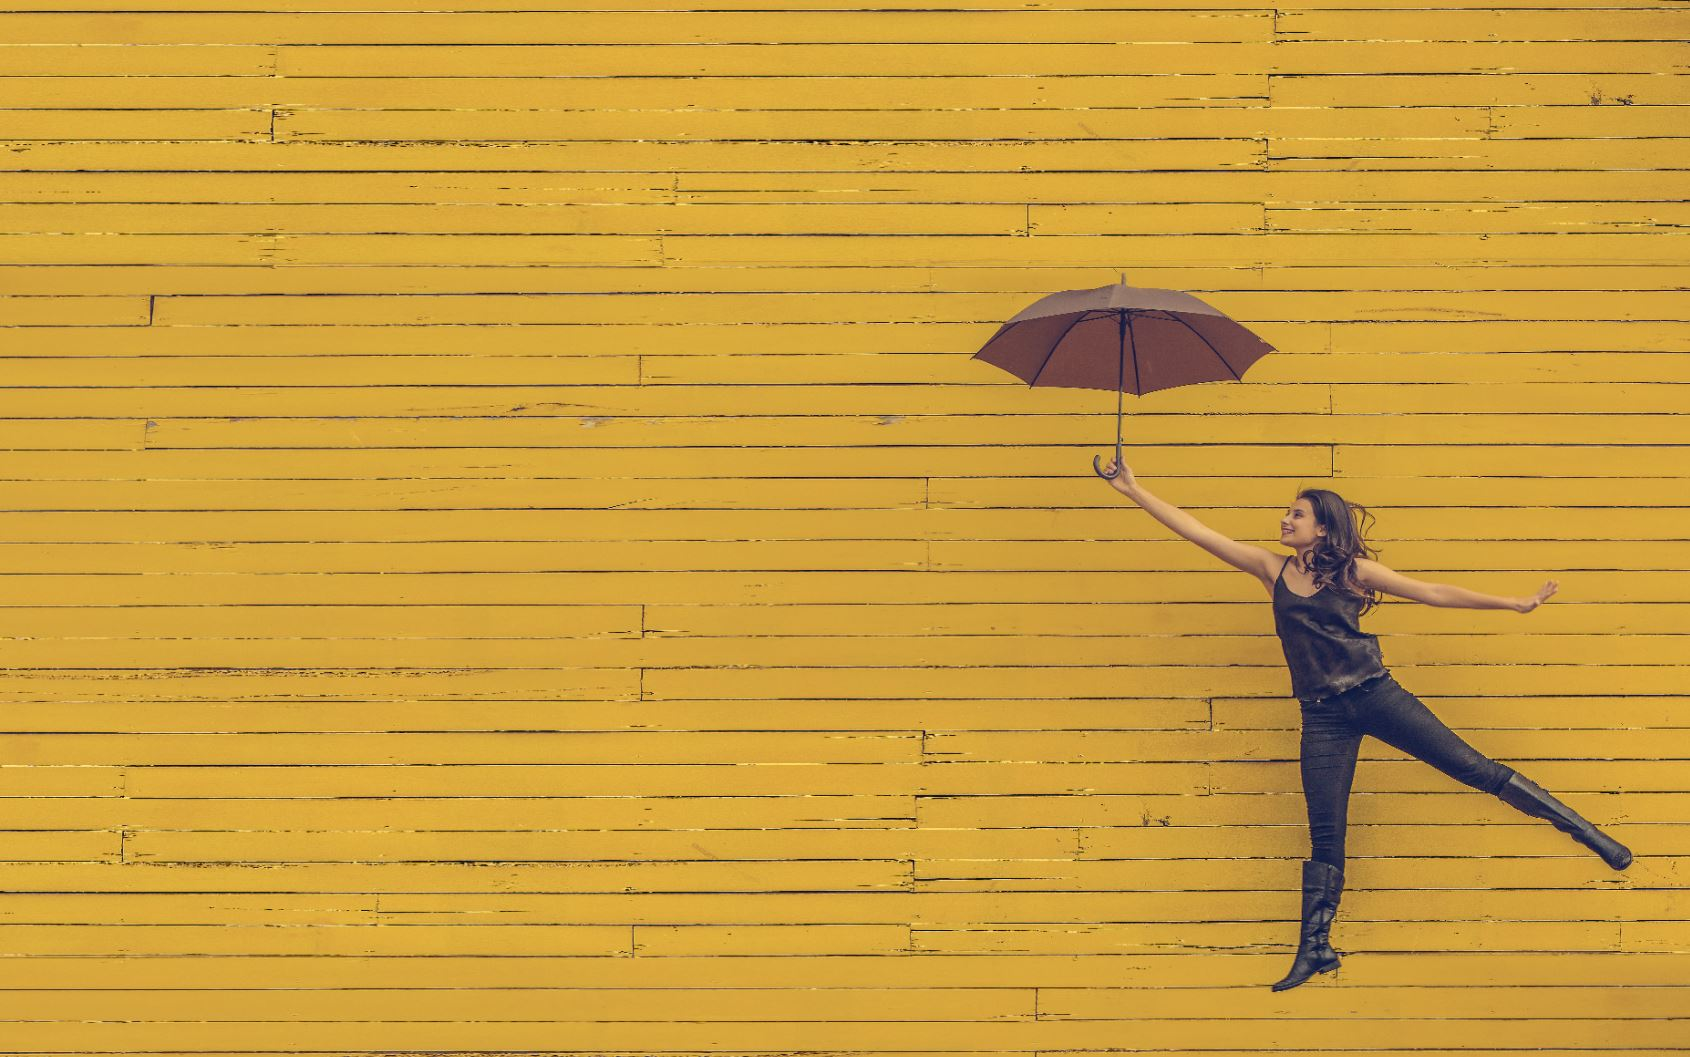 Girl smiling holding umbrella in front of bright yellow wall